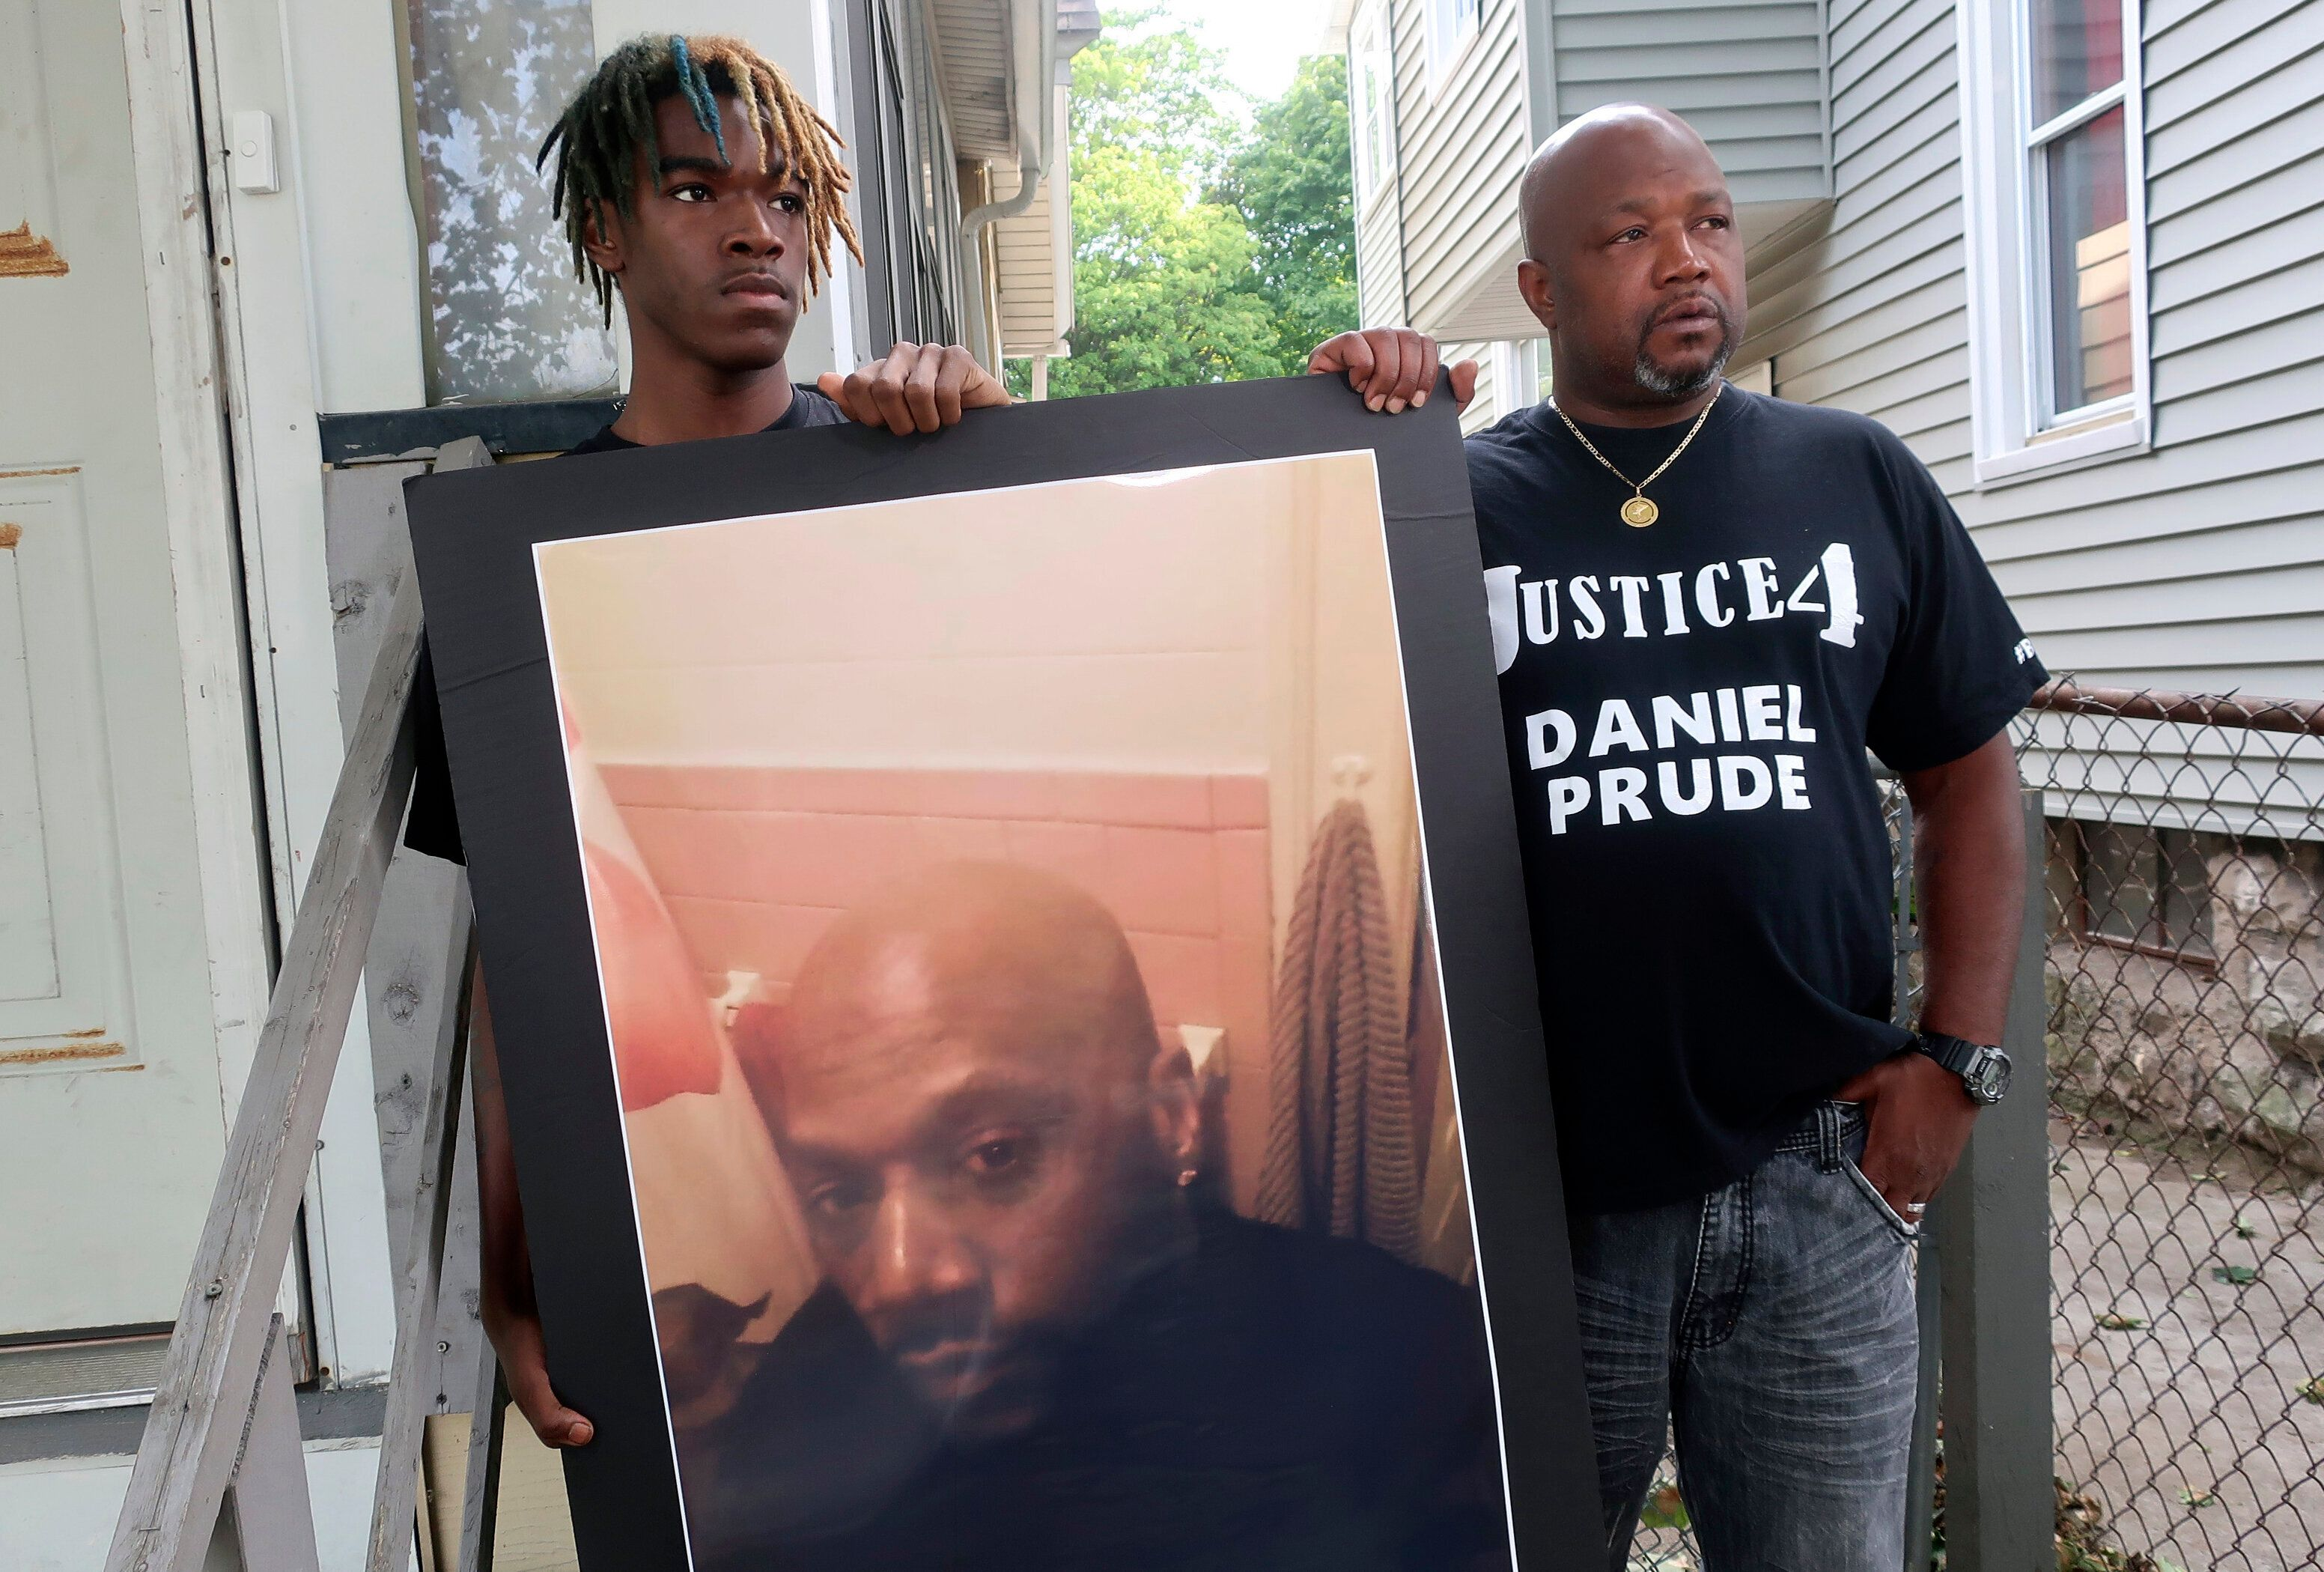 Joe Prude, uncle of Daniel Prude, right, and Daniel's nephew Armin, stand with a picture of Daniel Prude in Rochester, N.Y.,